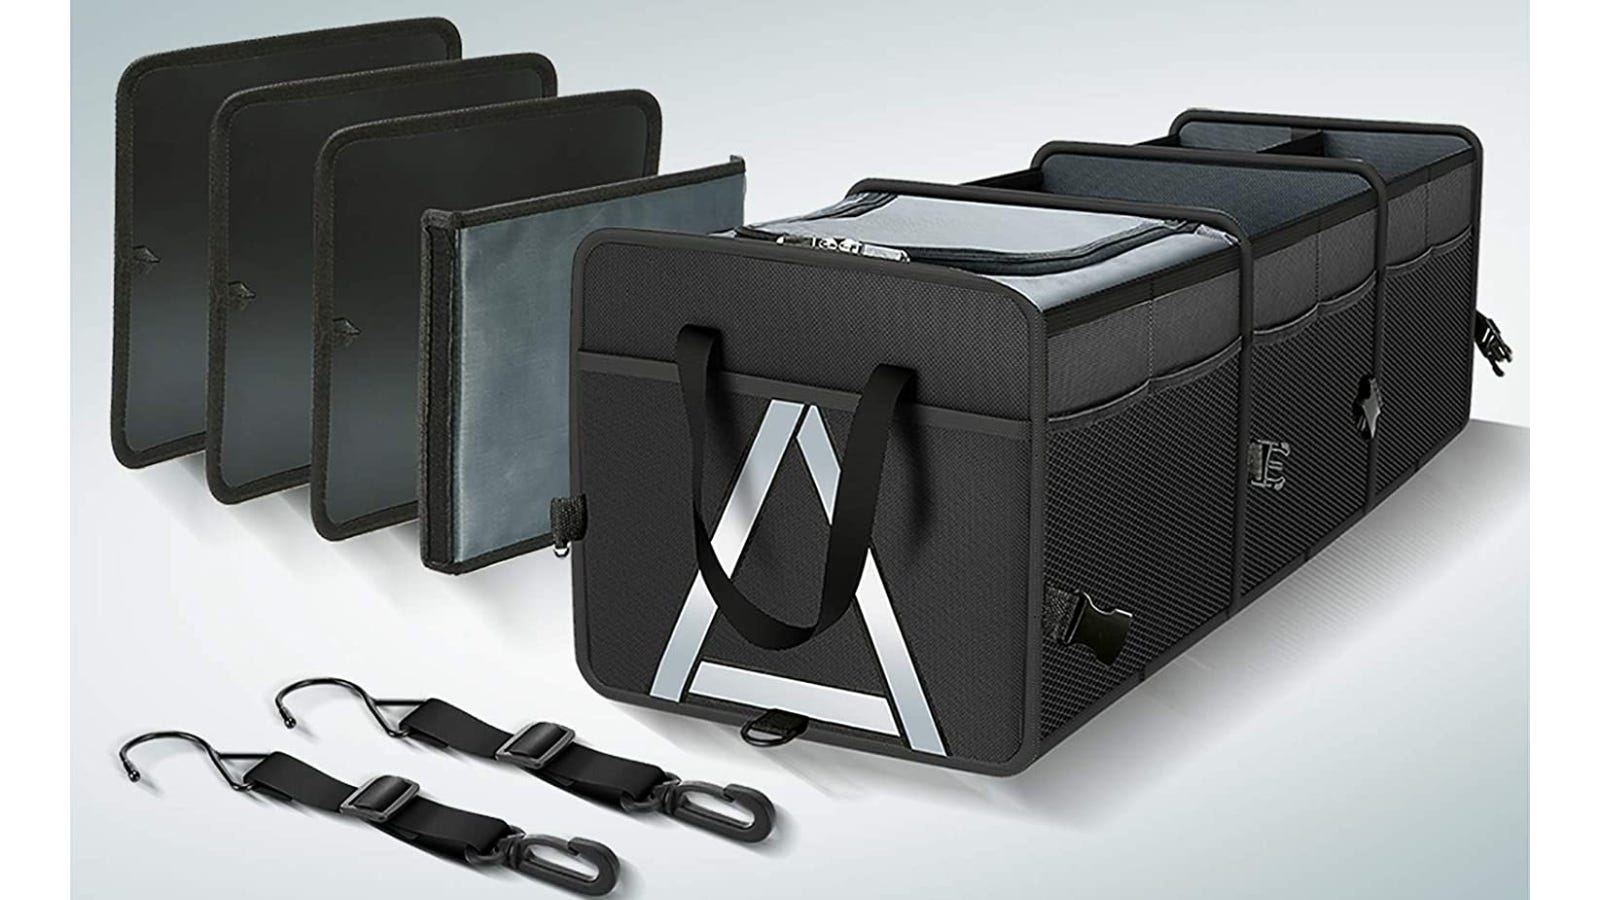 A black trunk storage organizer sitting next to two adjustable straps and four dividers.